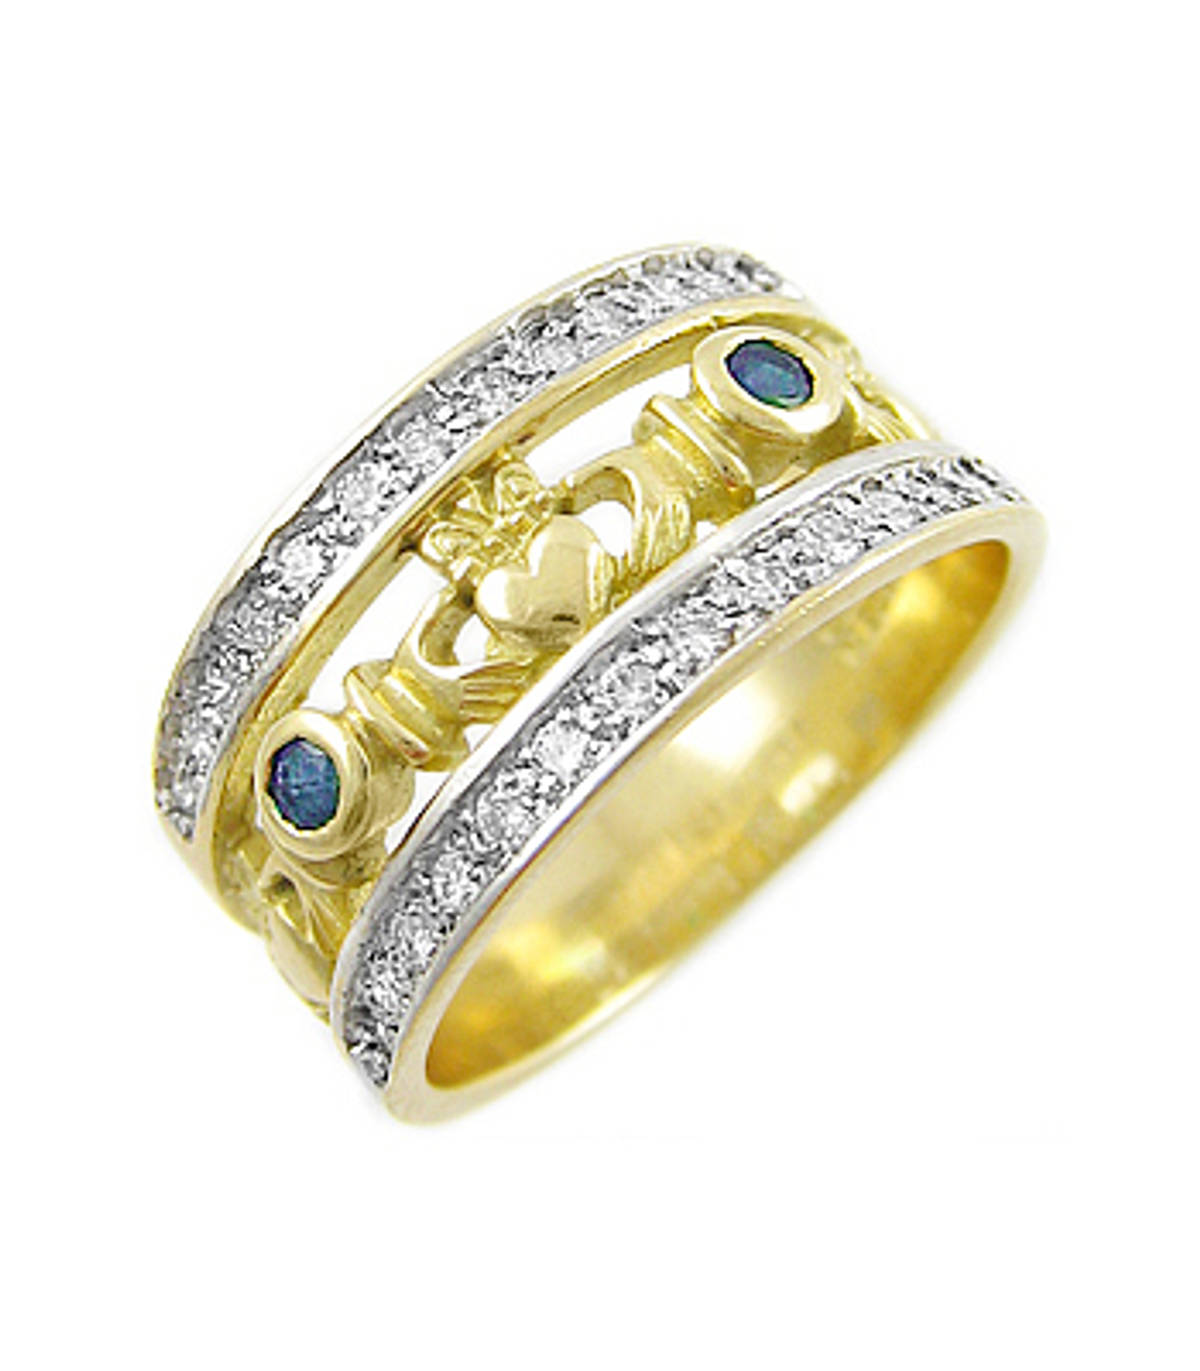 14 carat yellow gold sapphire 0.10cts/diamonds 0.26cts claddagh engagement ring